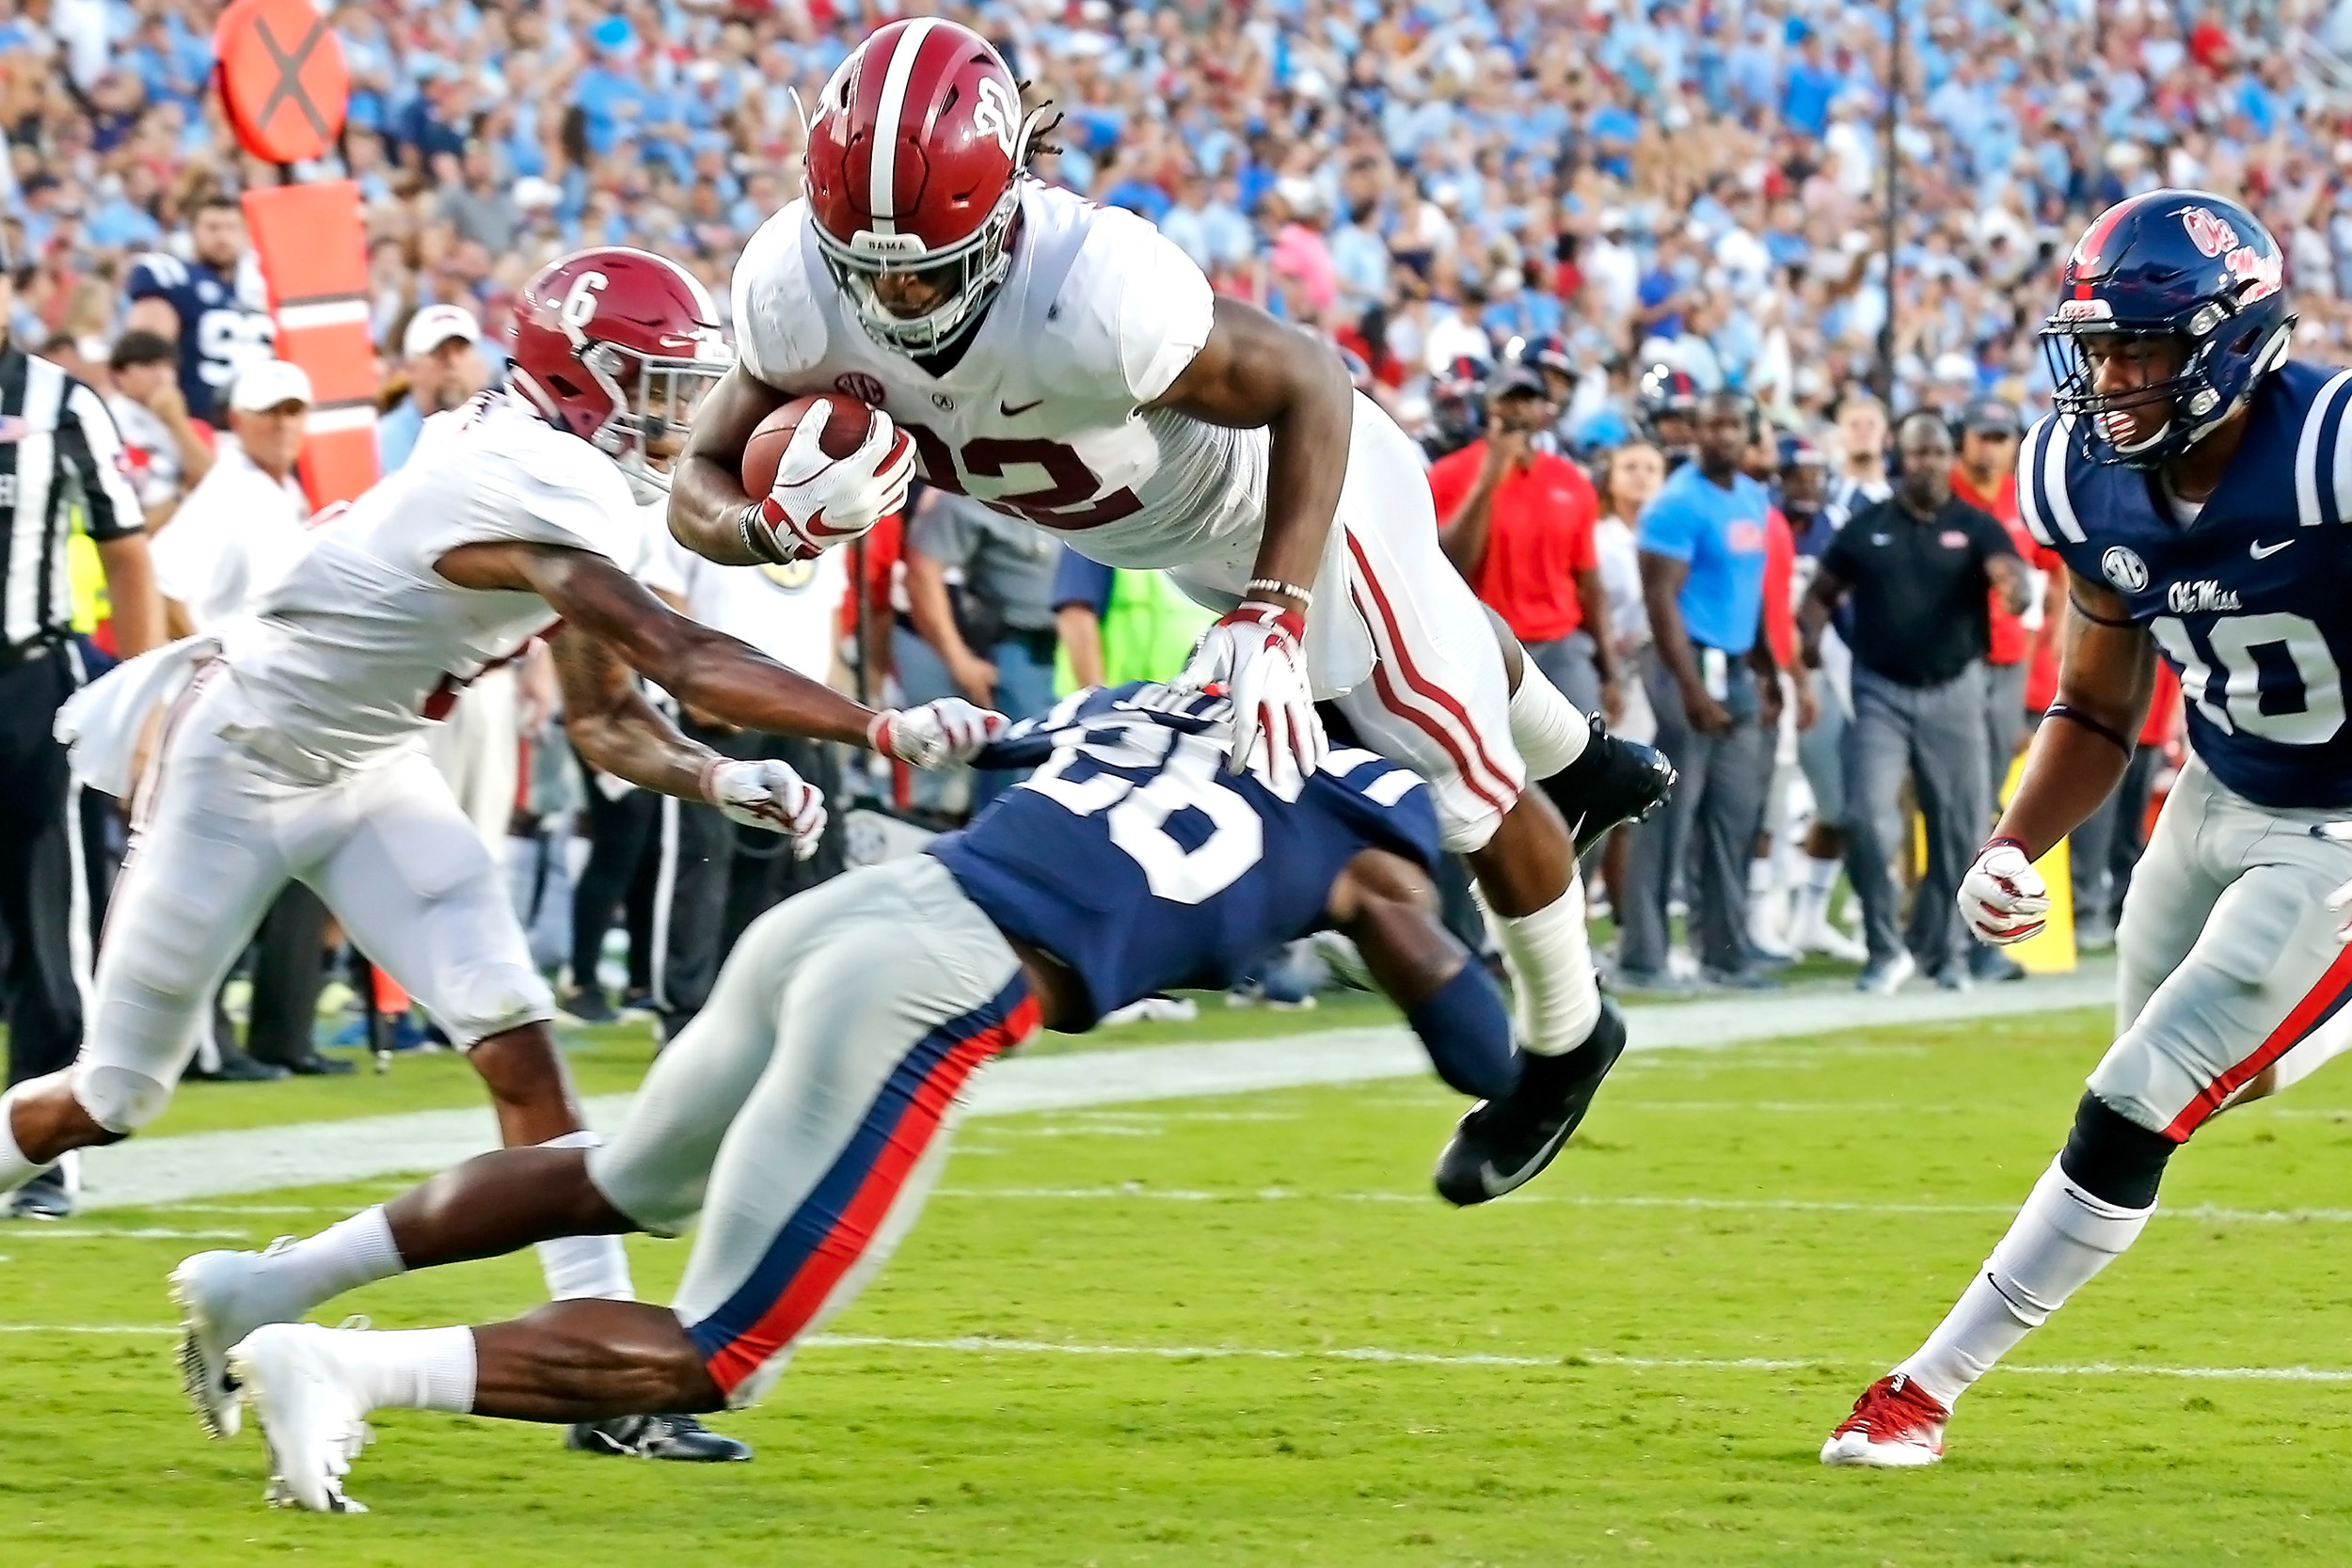 Alabama Crimson Tide running back Najee Harris (22) leaps for a touchdown during the game between the University of Alabama and Ole Miss at Vaught-Hemingway Stadium. Jason Clark / Daily Mountain Eagle